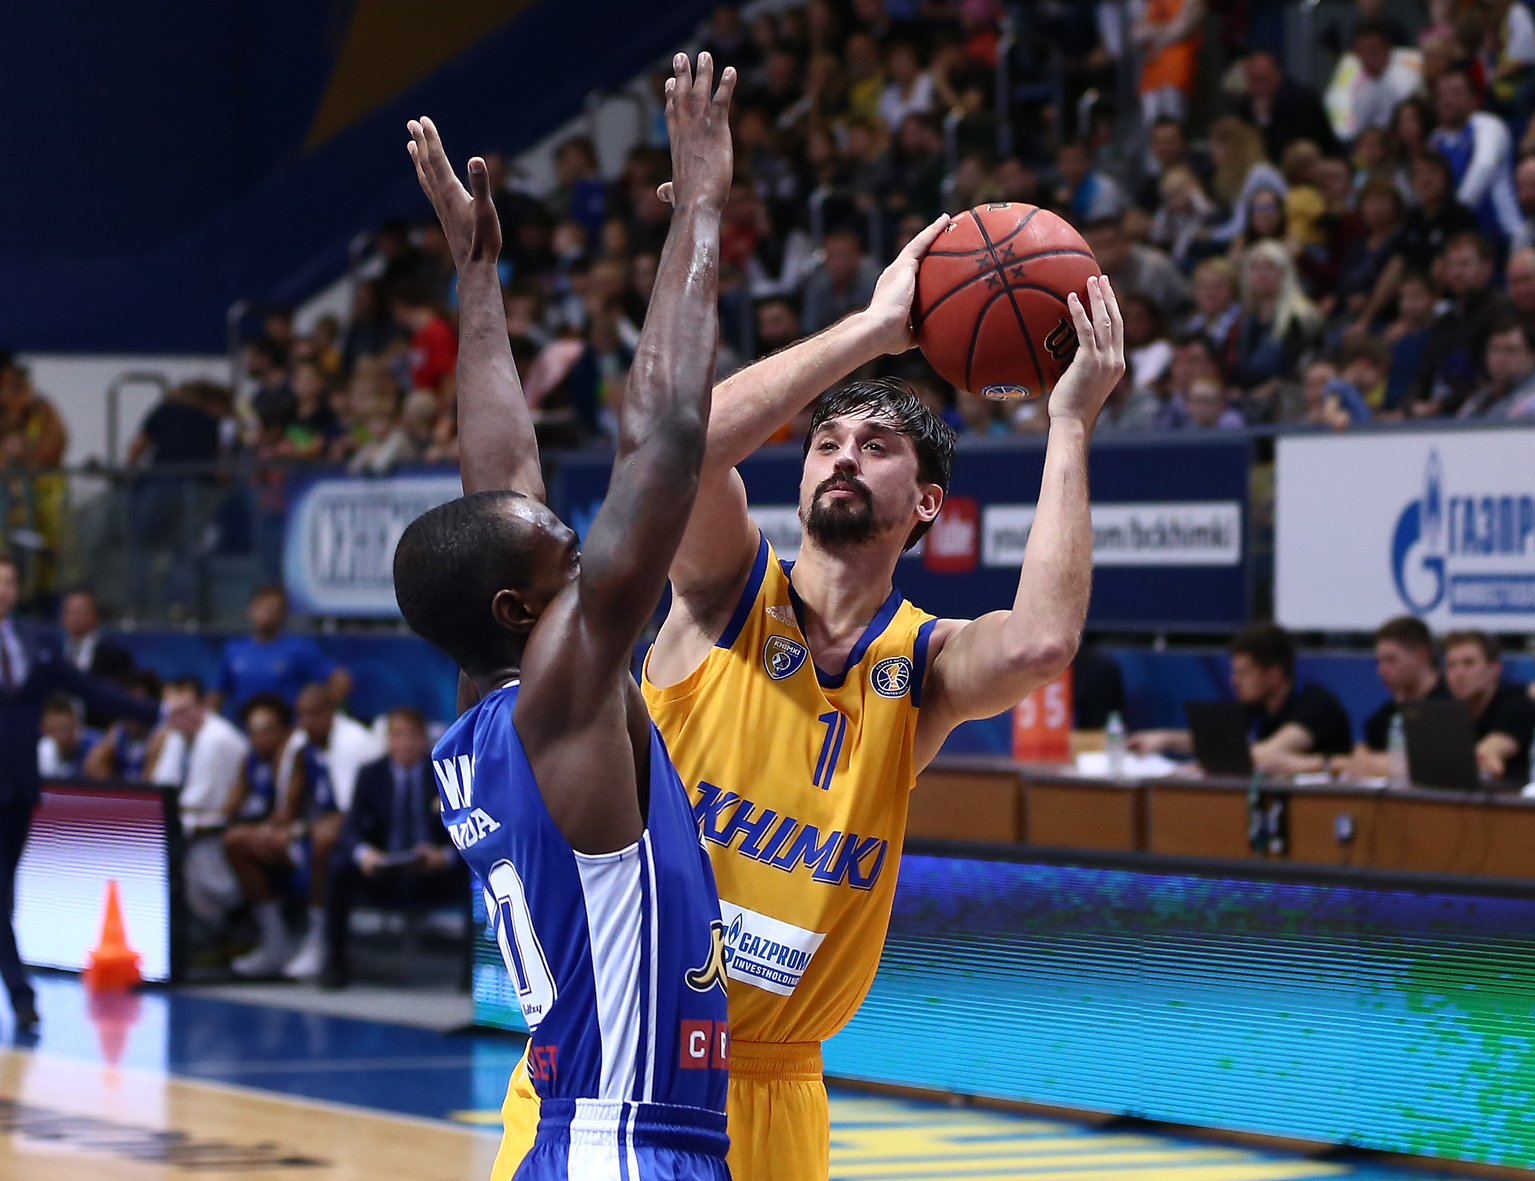 Khimki Defeats Kalev, Shved Makes History